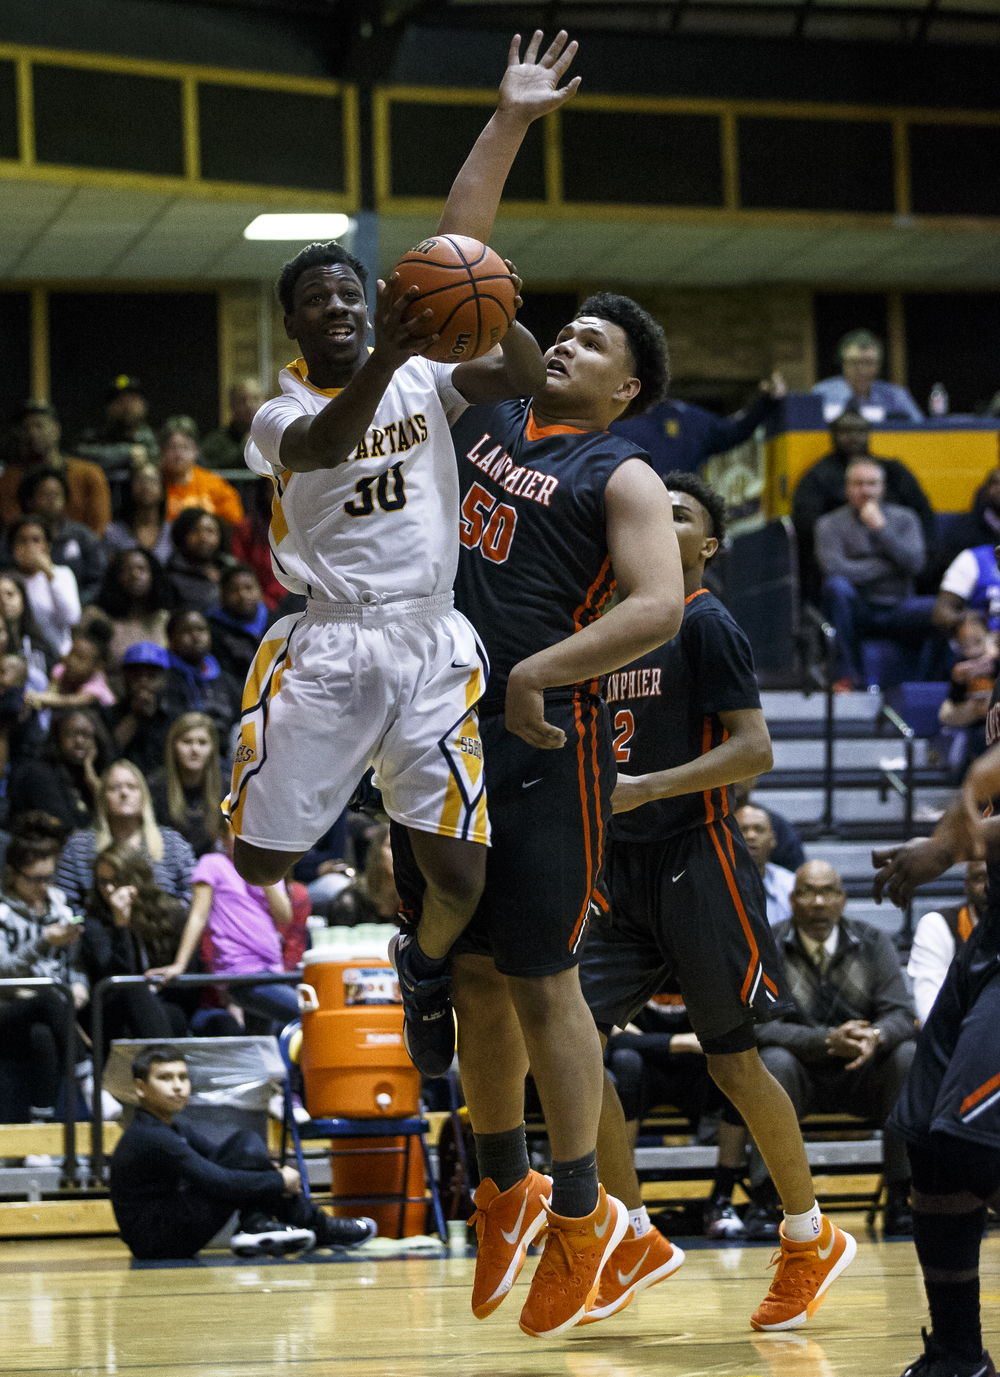 Southeast's D'Angelo Hughes (30) goes up for a shot against Lanphier's William Boles (50) in the first half at Herb Scheffler Gymnasium, Friday, Feb. 26, 2016, in Springfield, Ill. Justin L. Fowler/The State Journal-Register